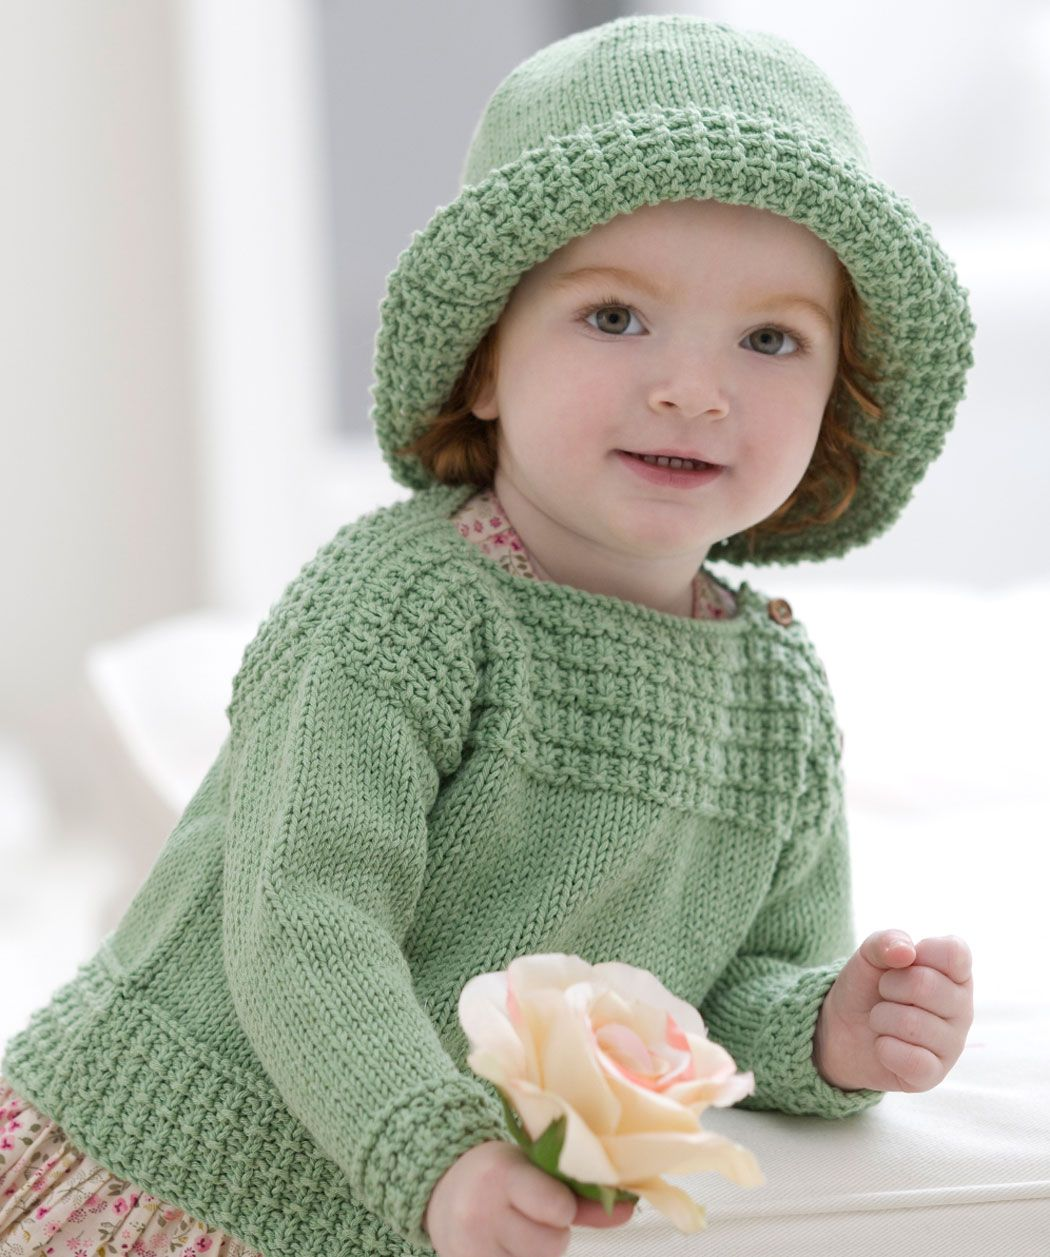 Knitting Sweater Designs For Baby : Baby boat neck sweater and sun hat knitting pattern this